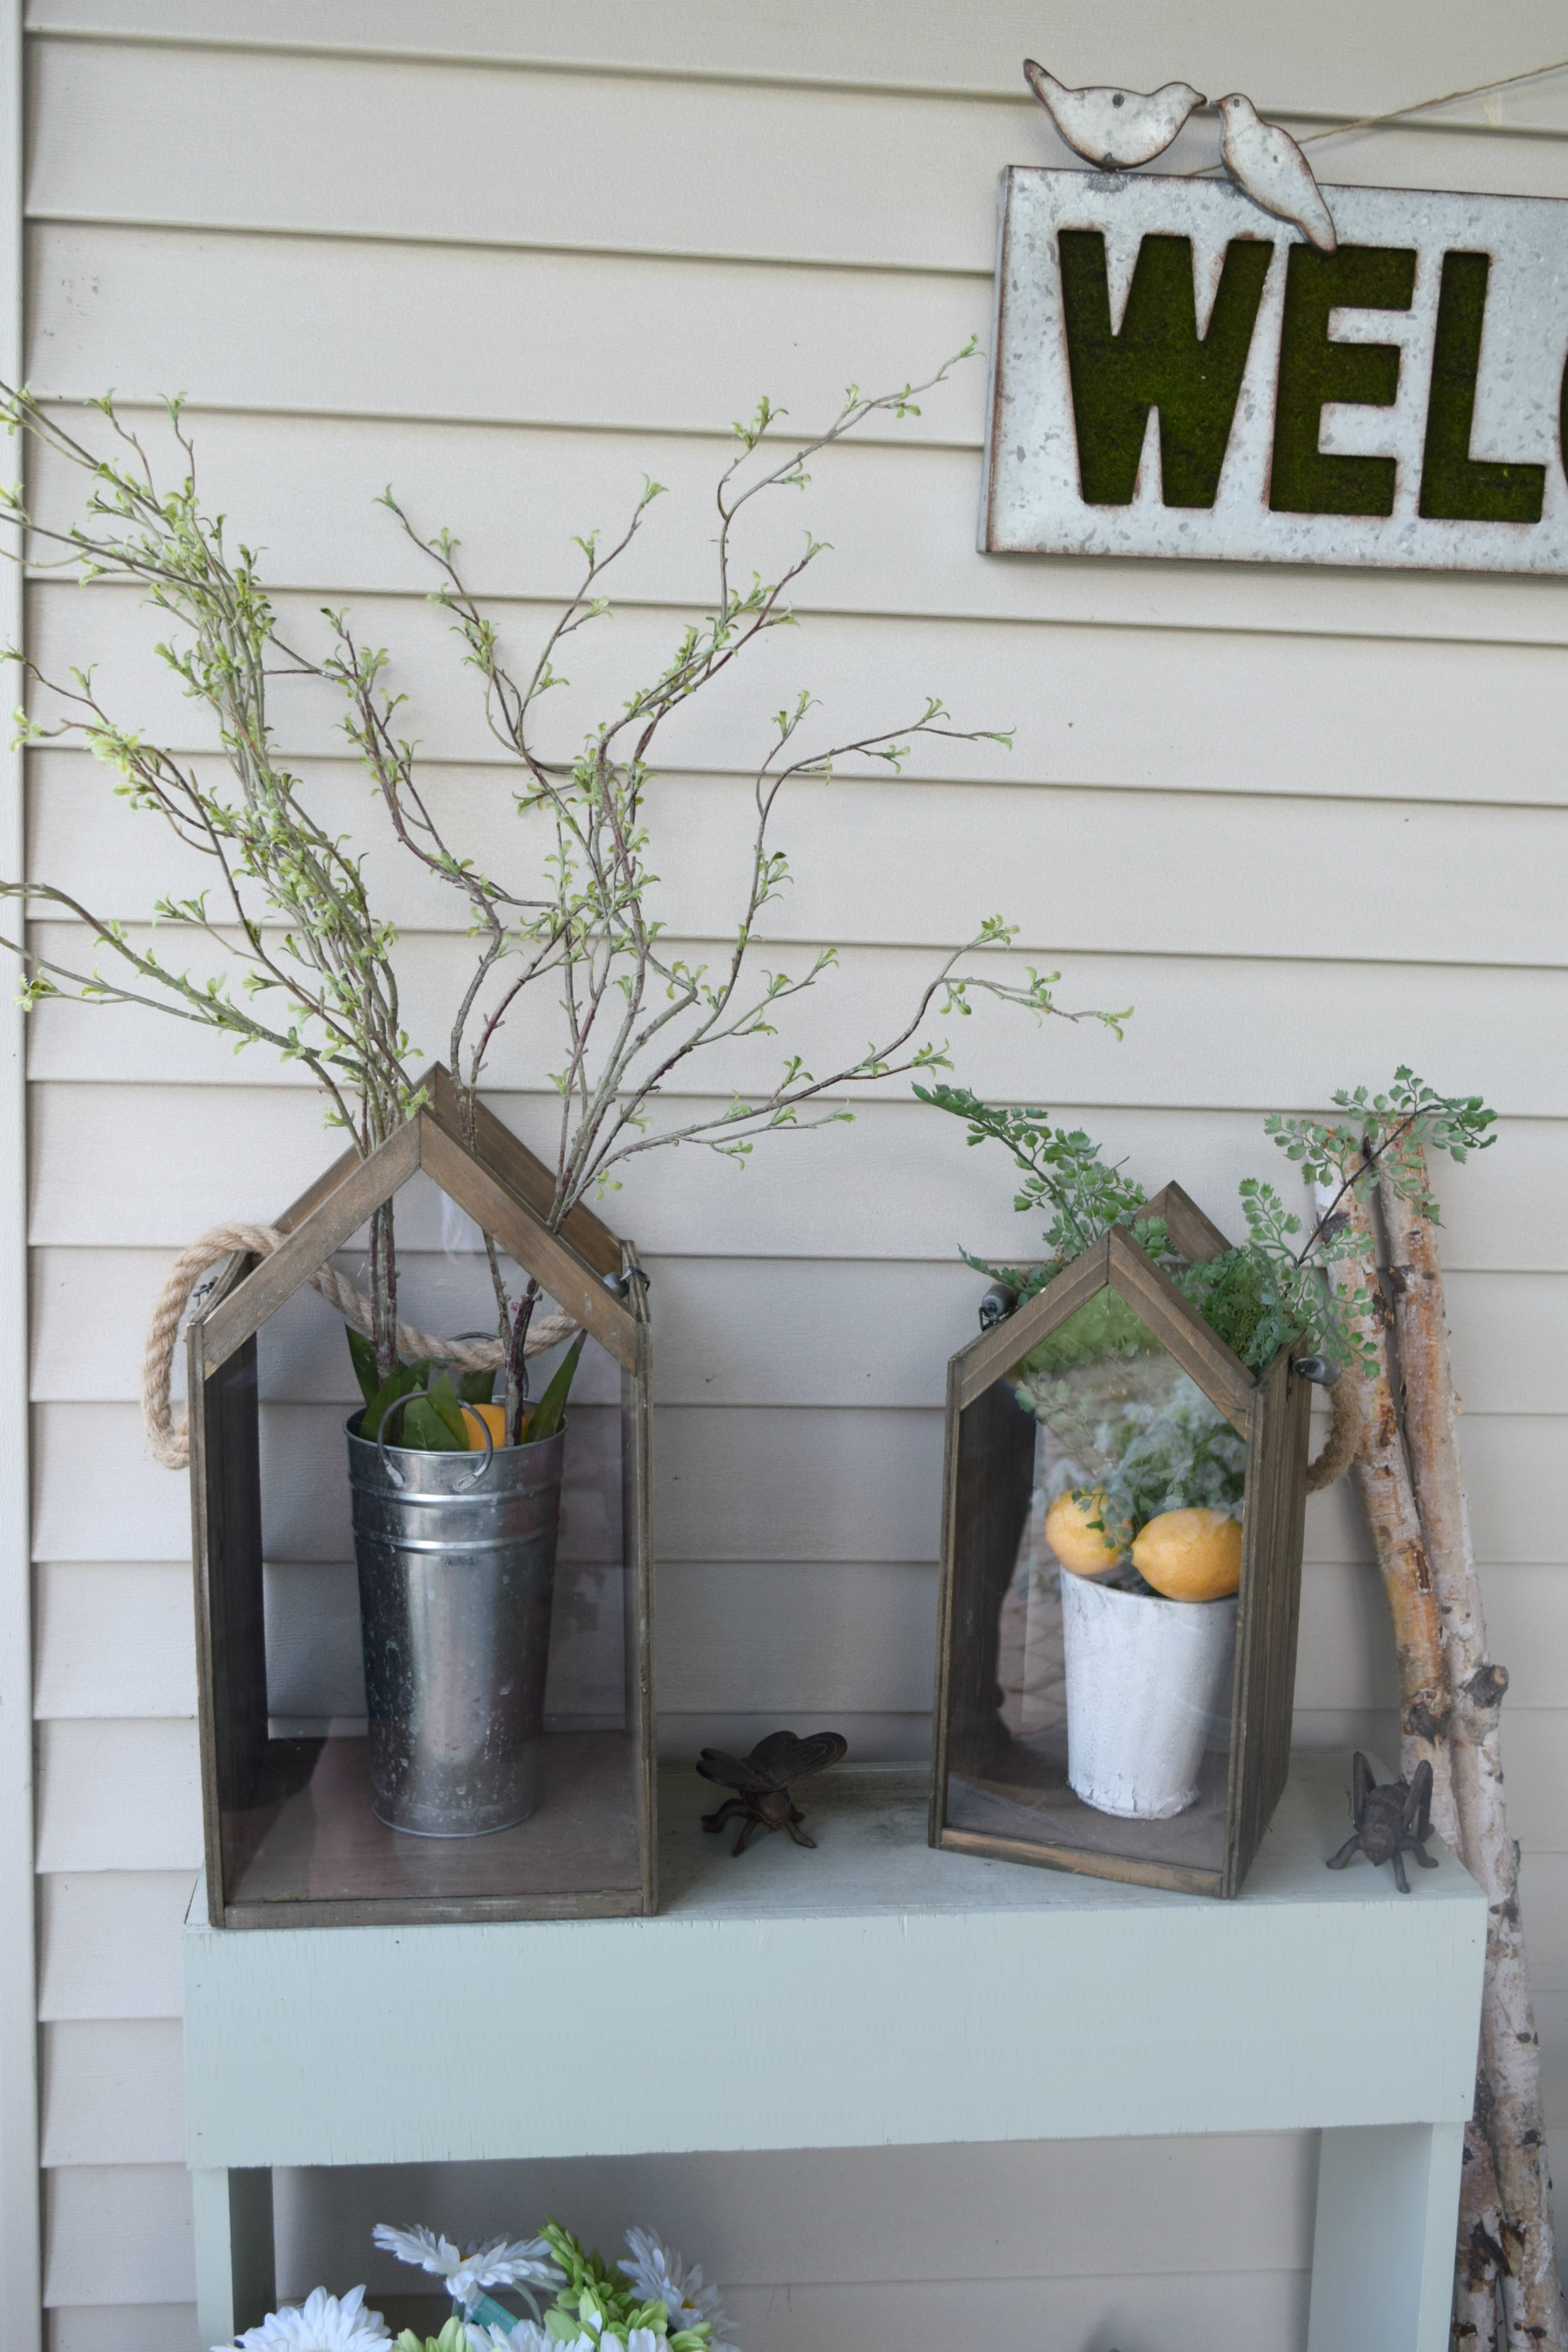 Curb appeal Challenge, adding lights and decor • Our House Now a Home